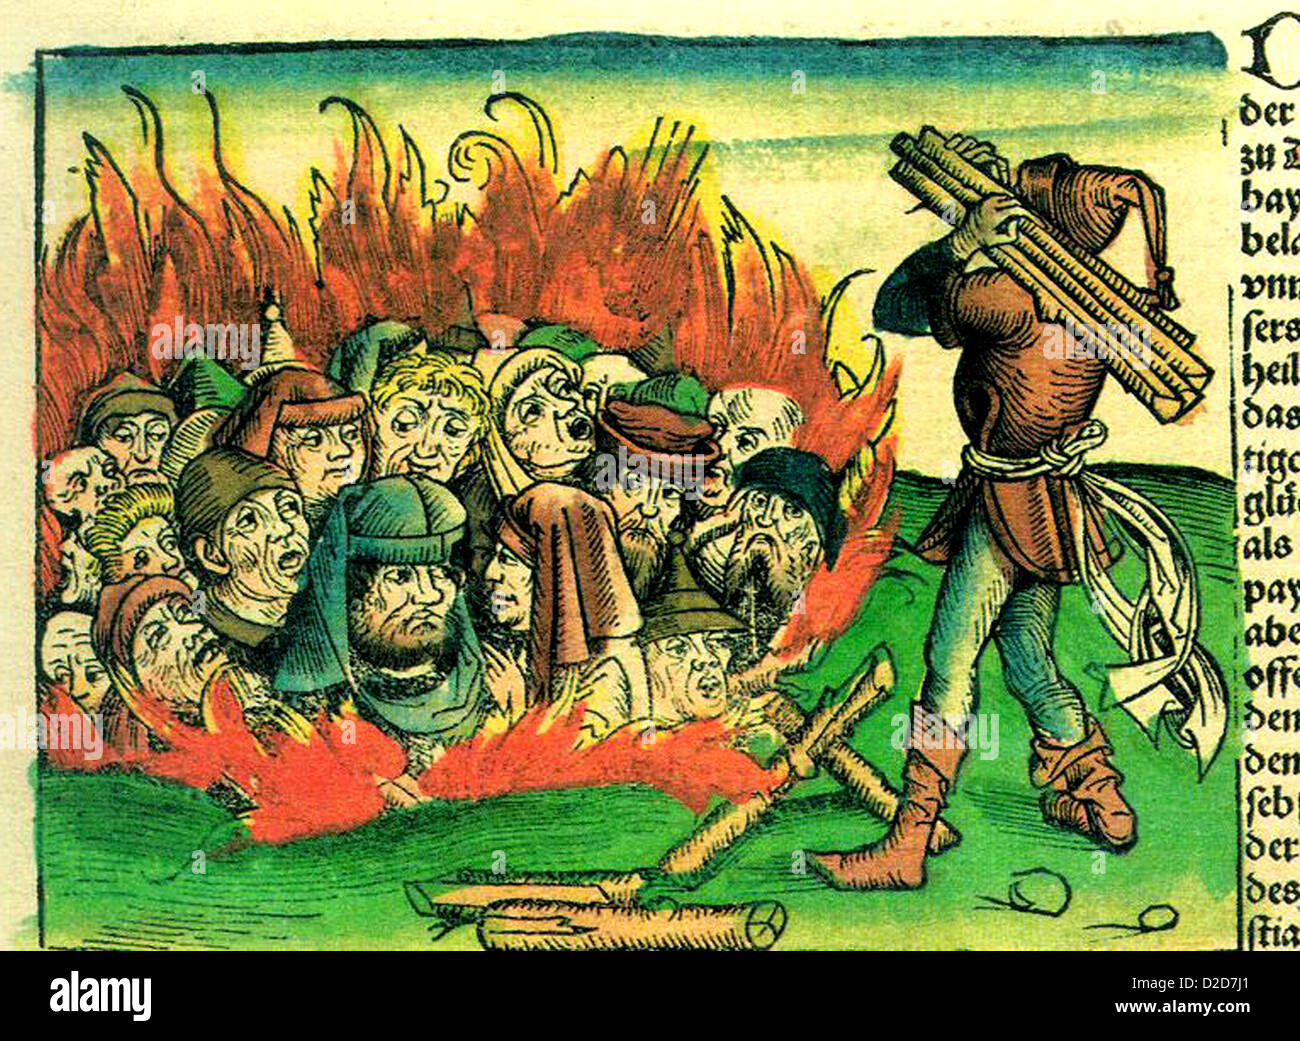 JEWISH DOCTORS burnt alive during the Black Death from the World History  by German physician Hartmann Schedel in - Stock Image